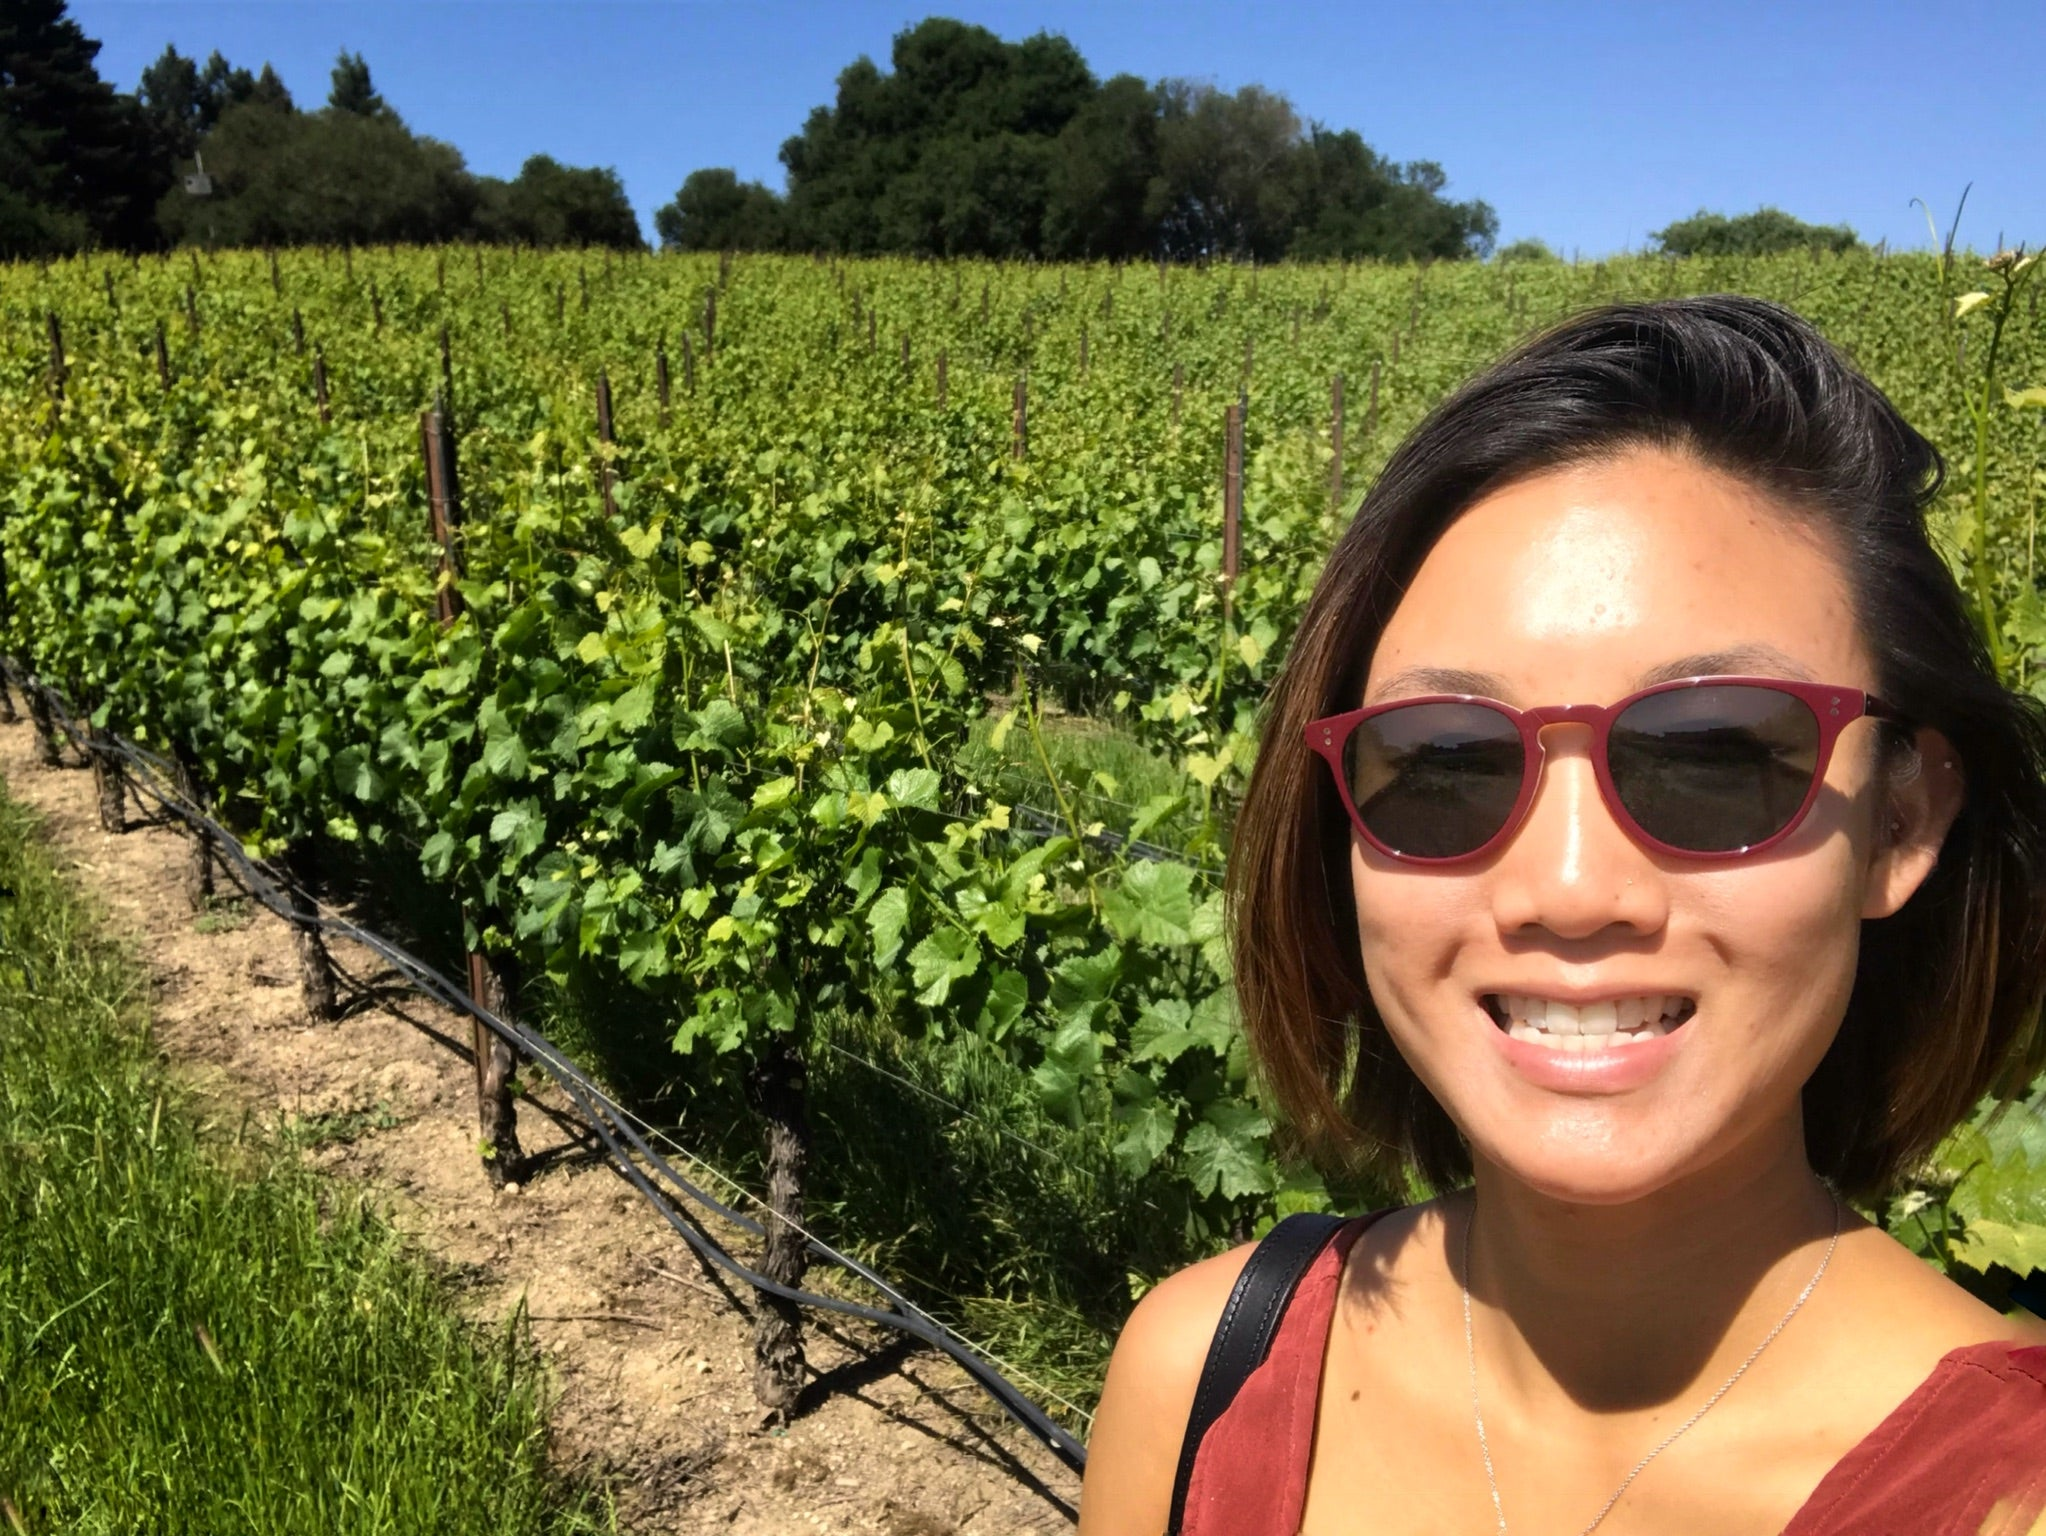 Weekend Wine Run in Russian River Valley, Sonoma County, California, USA with @keryums